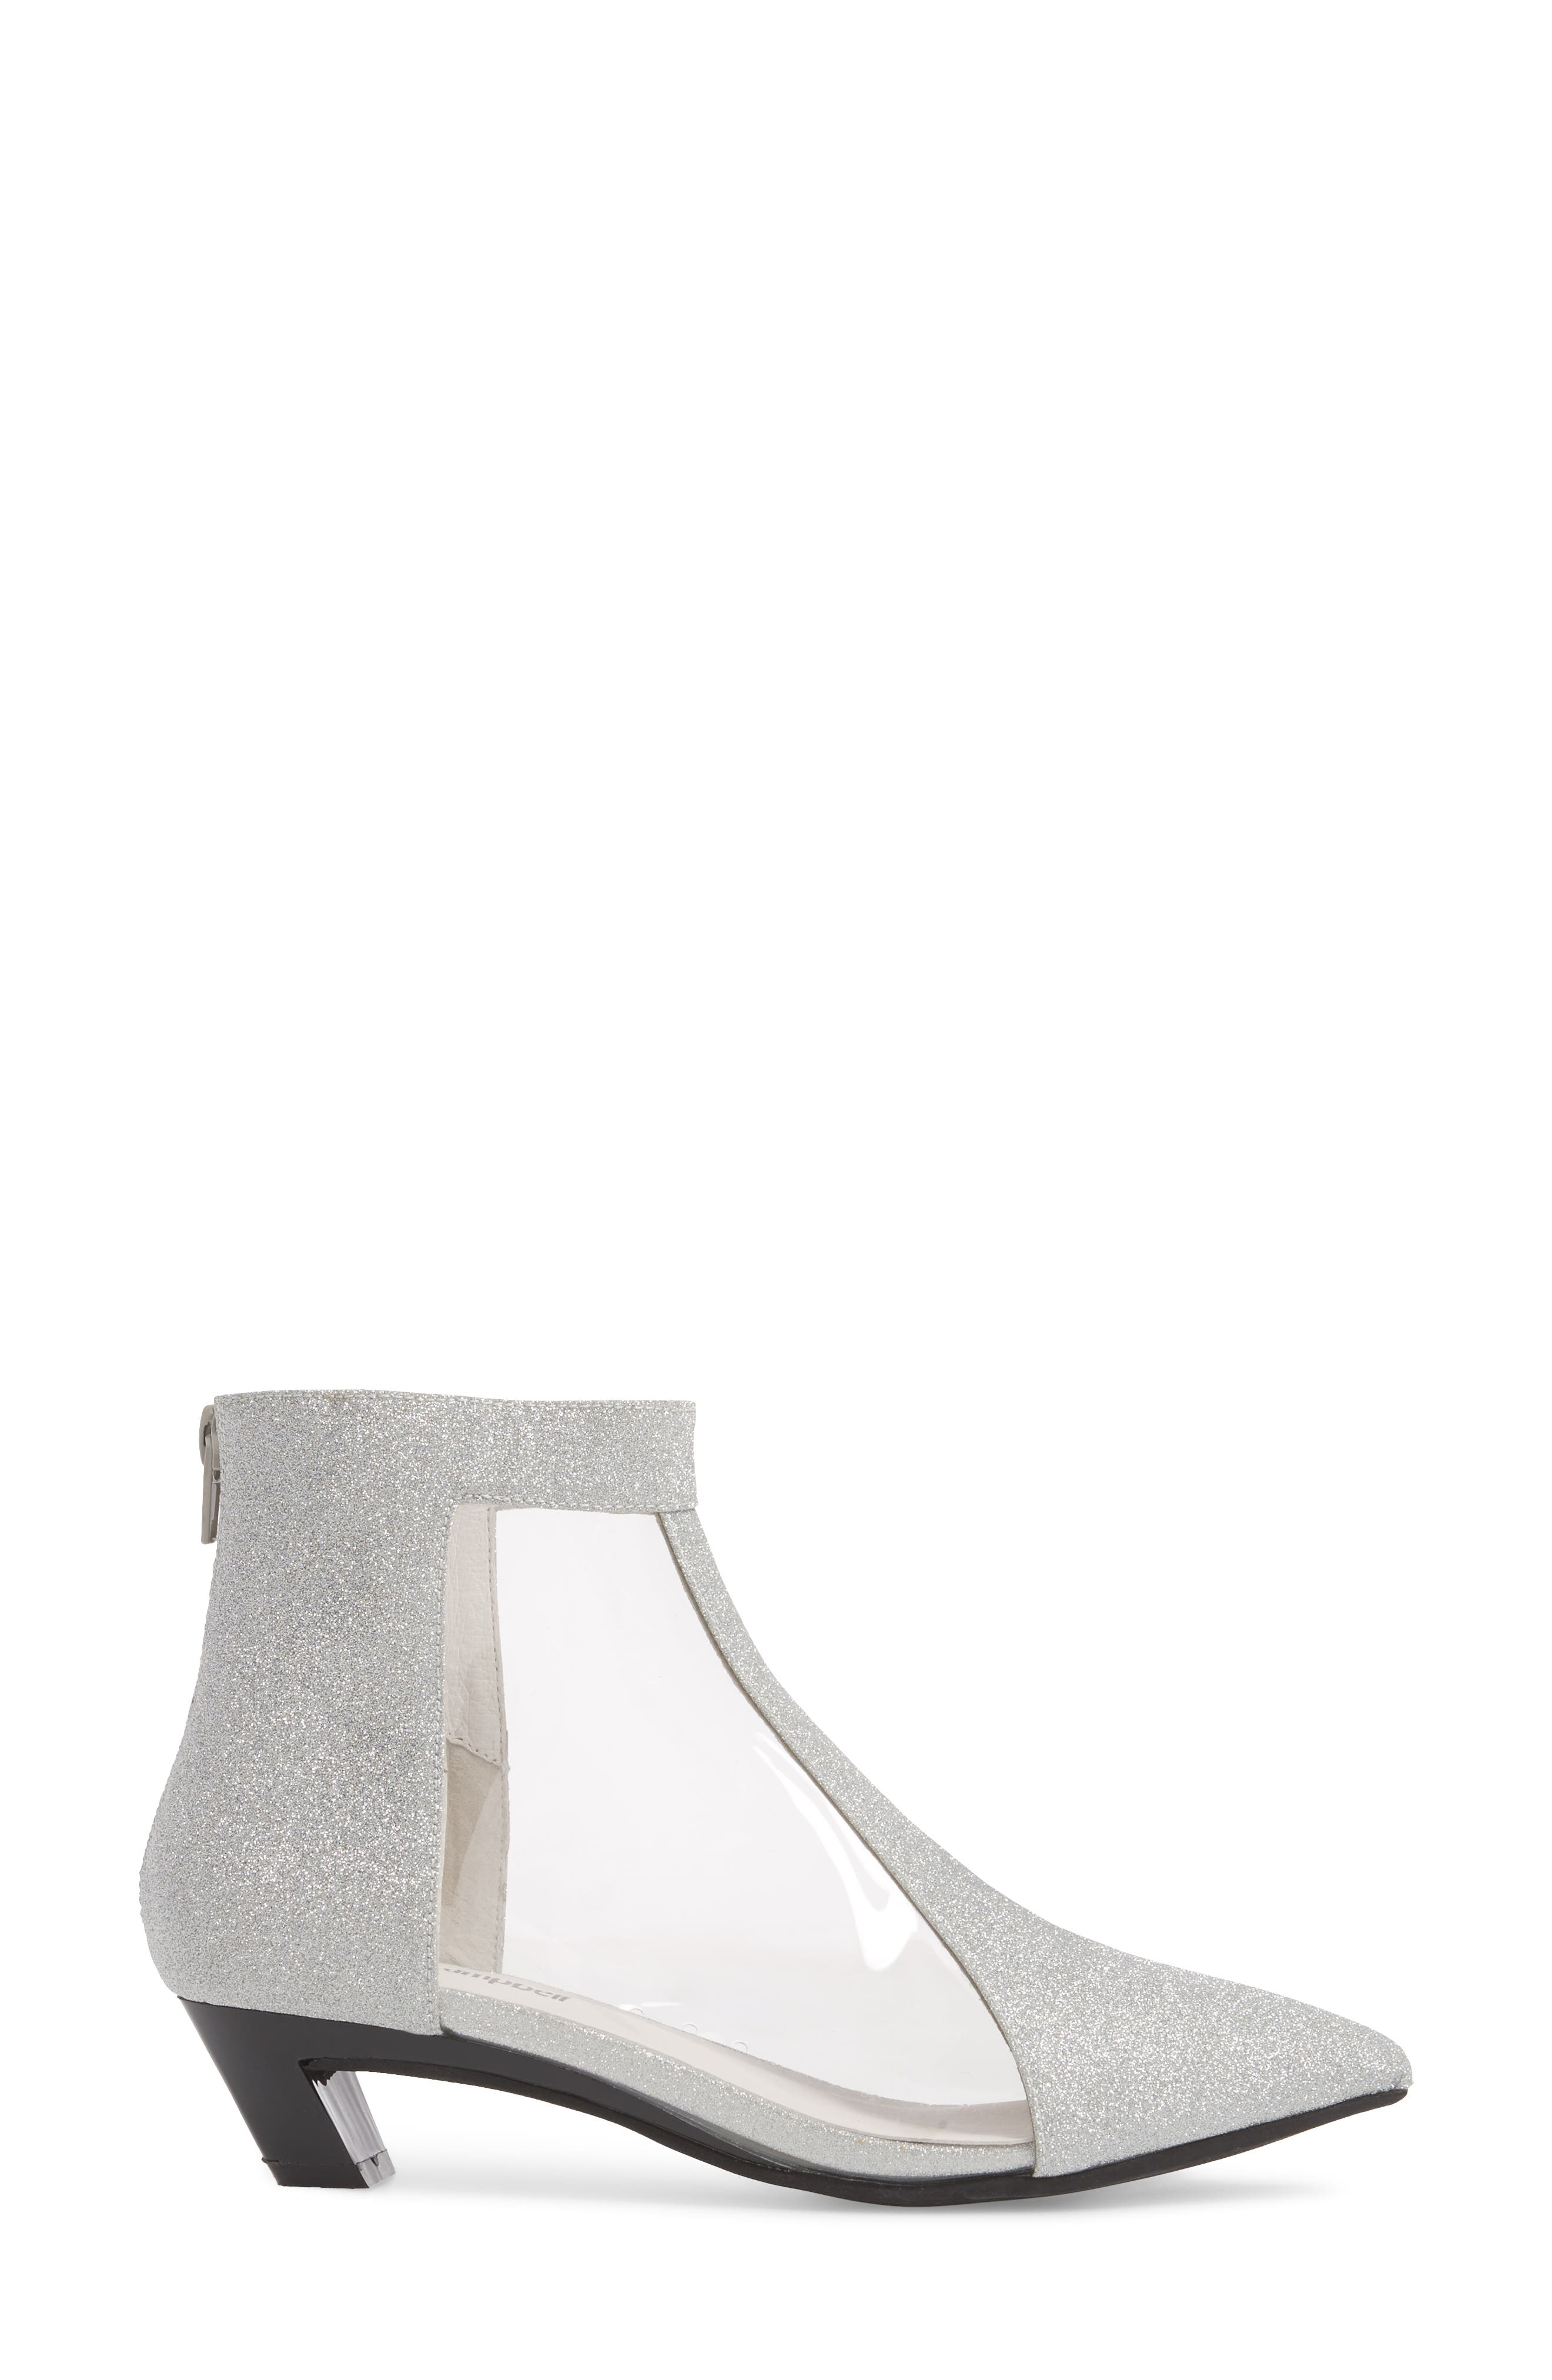 Mistress Bootie,                             Alternate thumbnail 3, color,                             Silver Glitter Leather